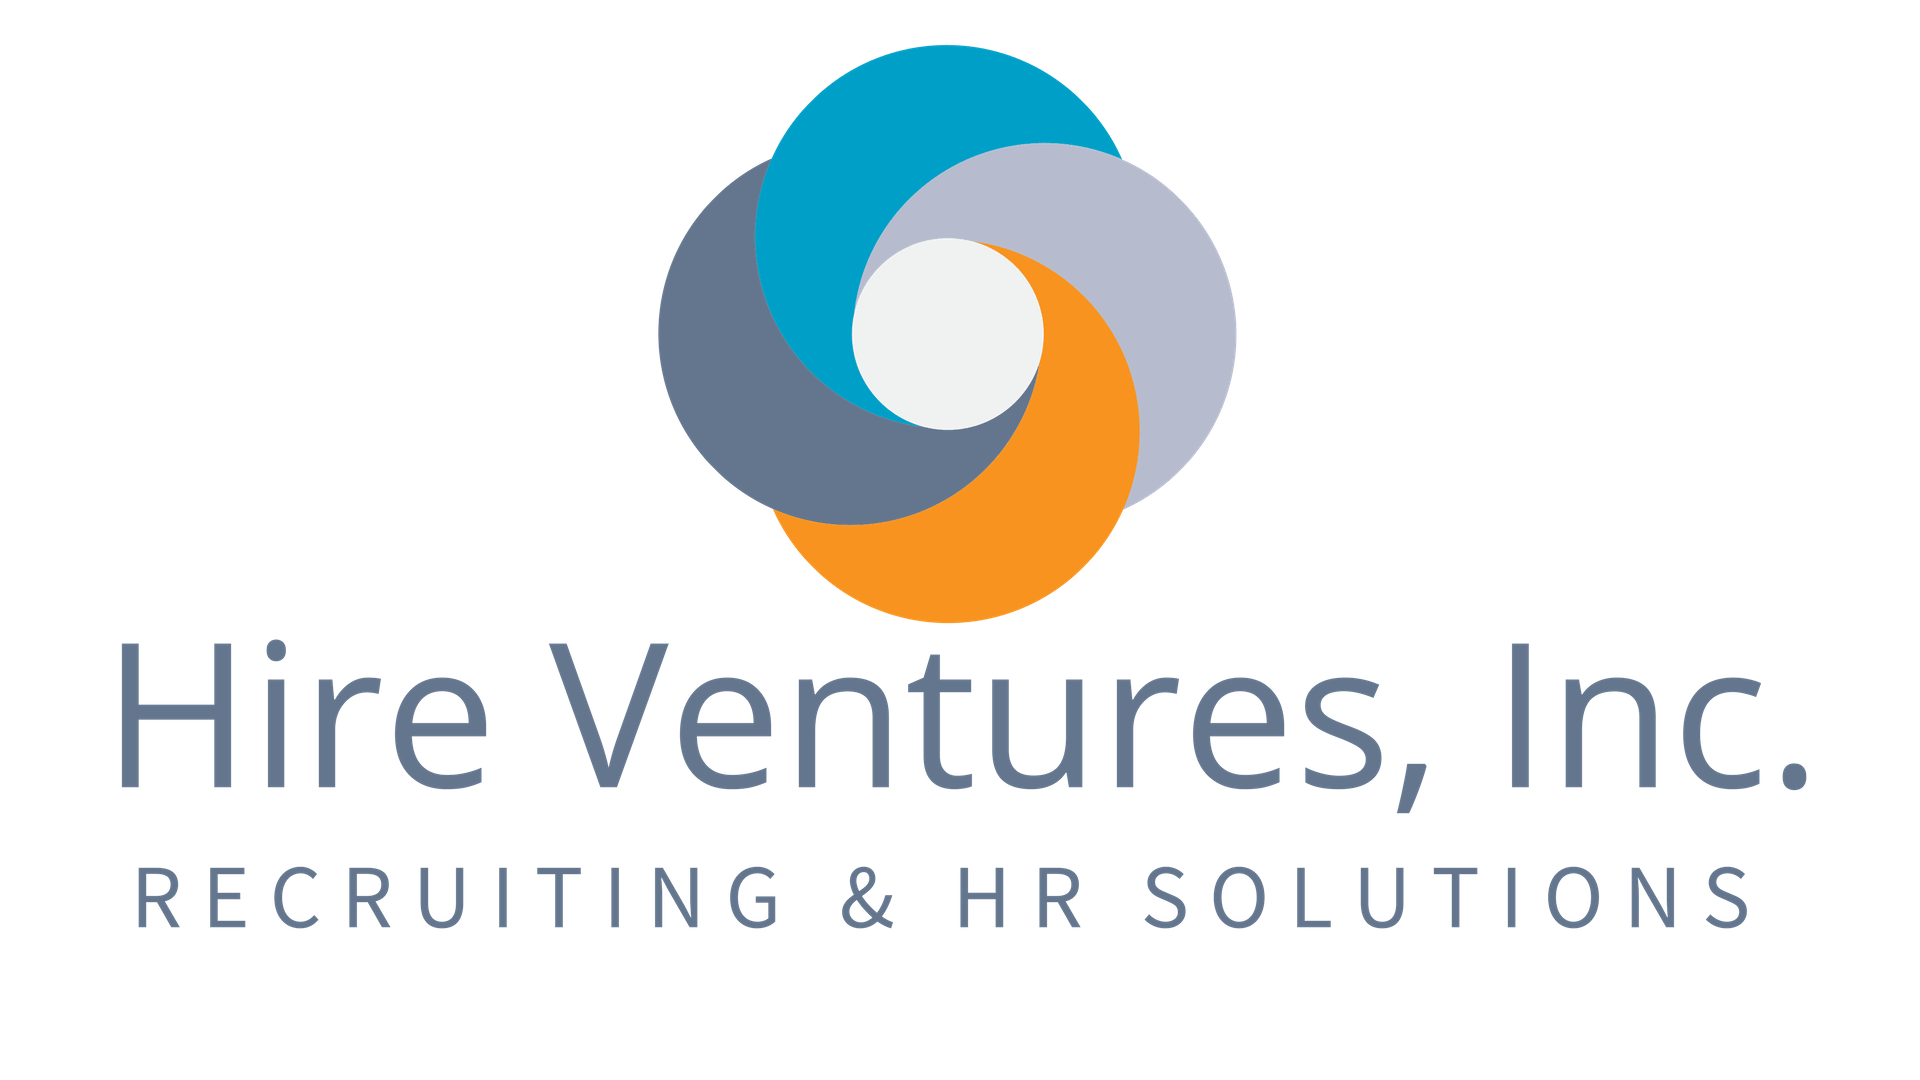 The Resumator Jobs Hire Ventures Inc Career Page